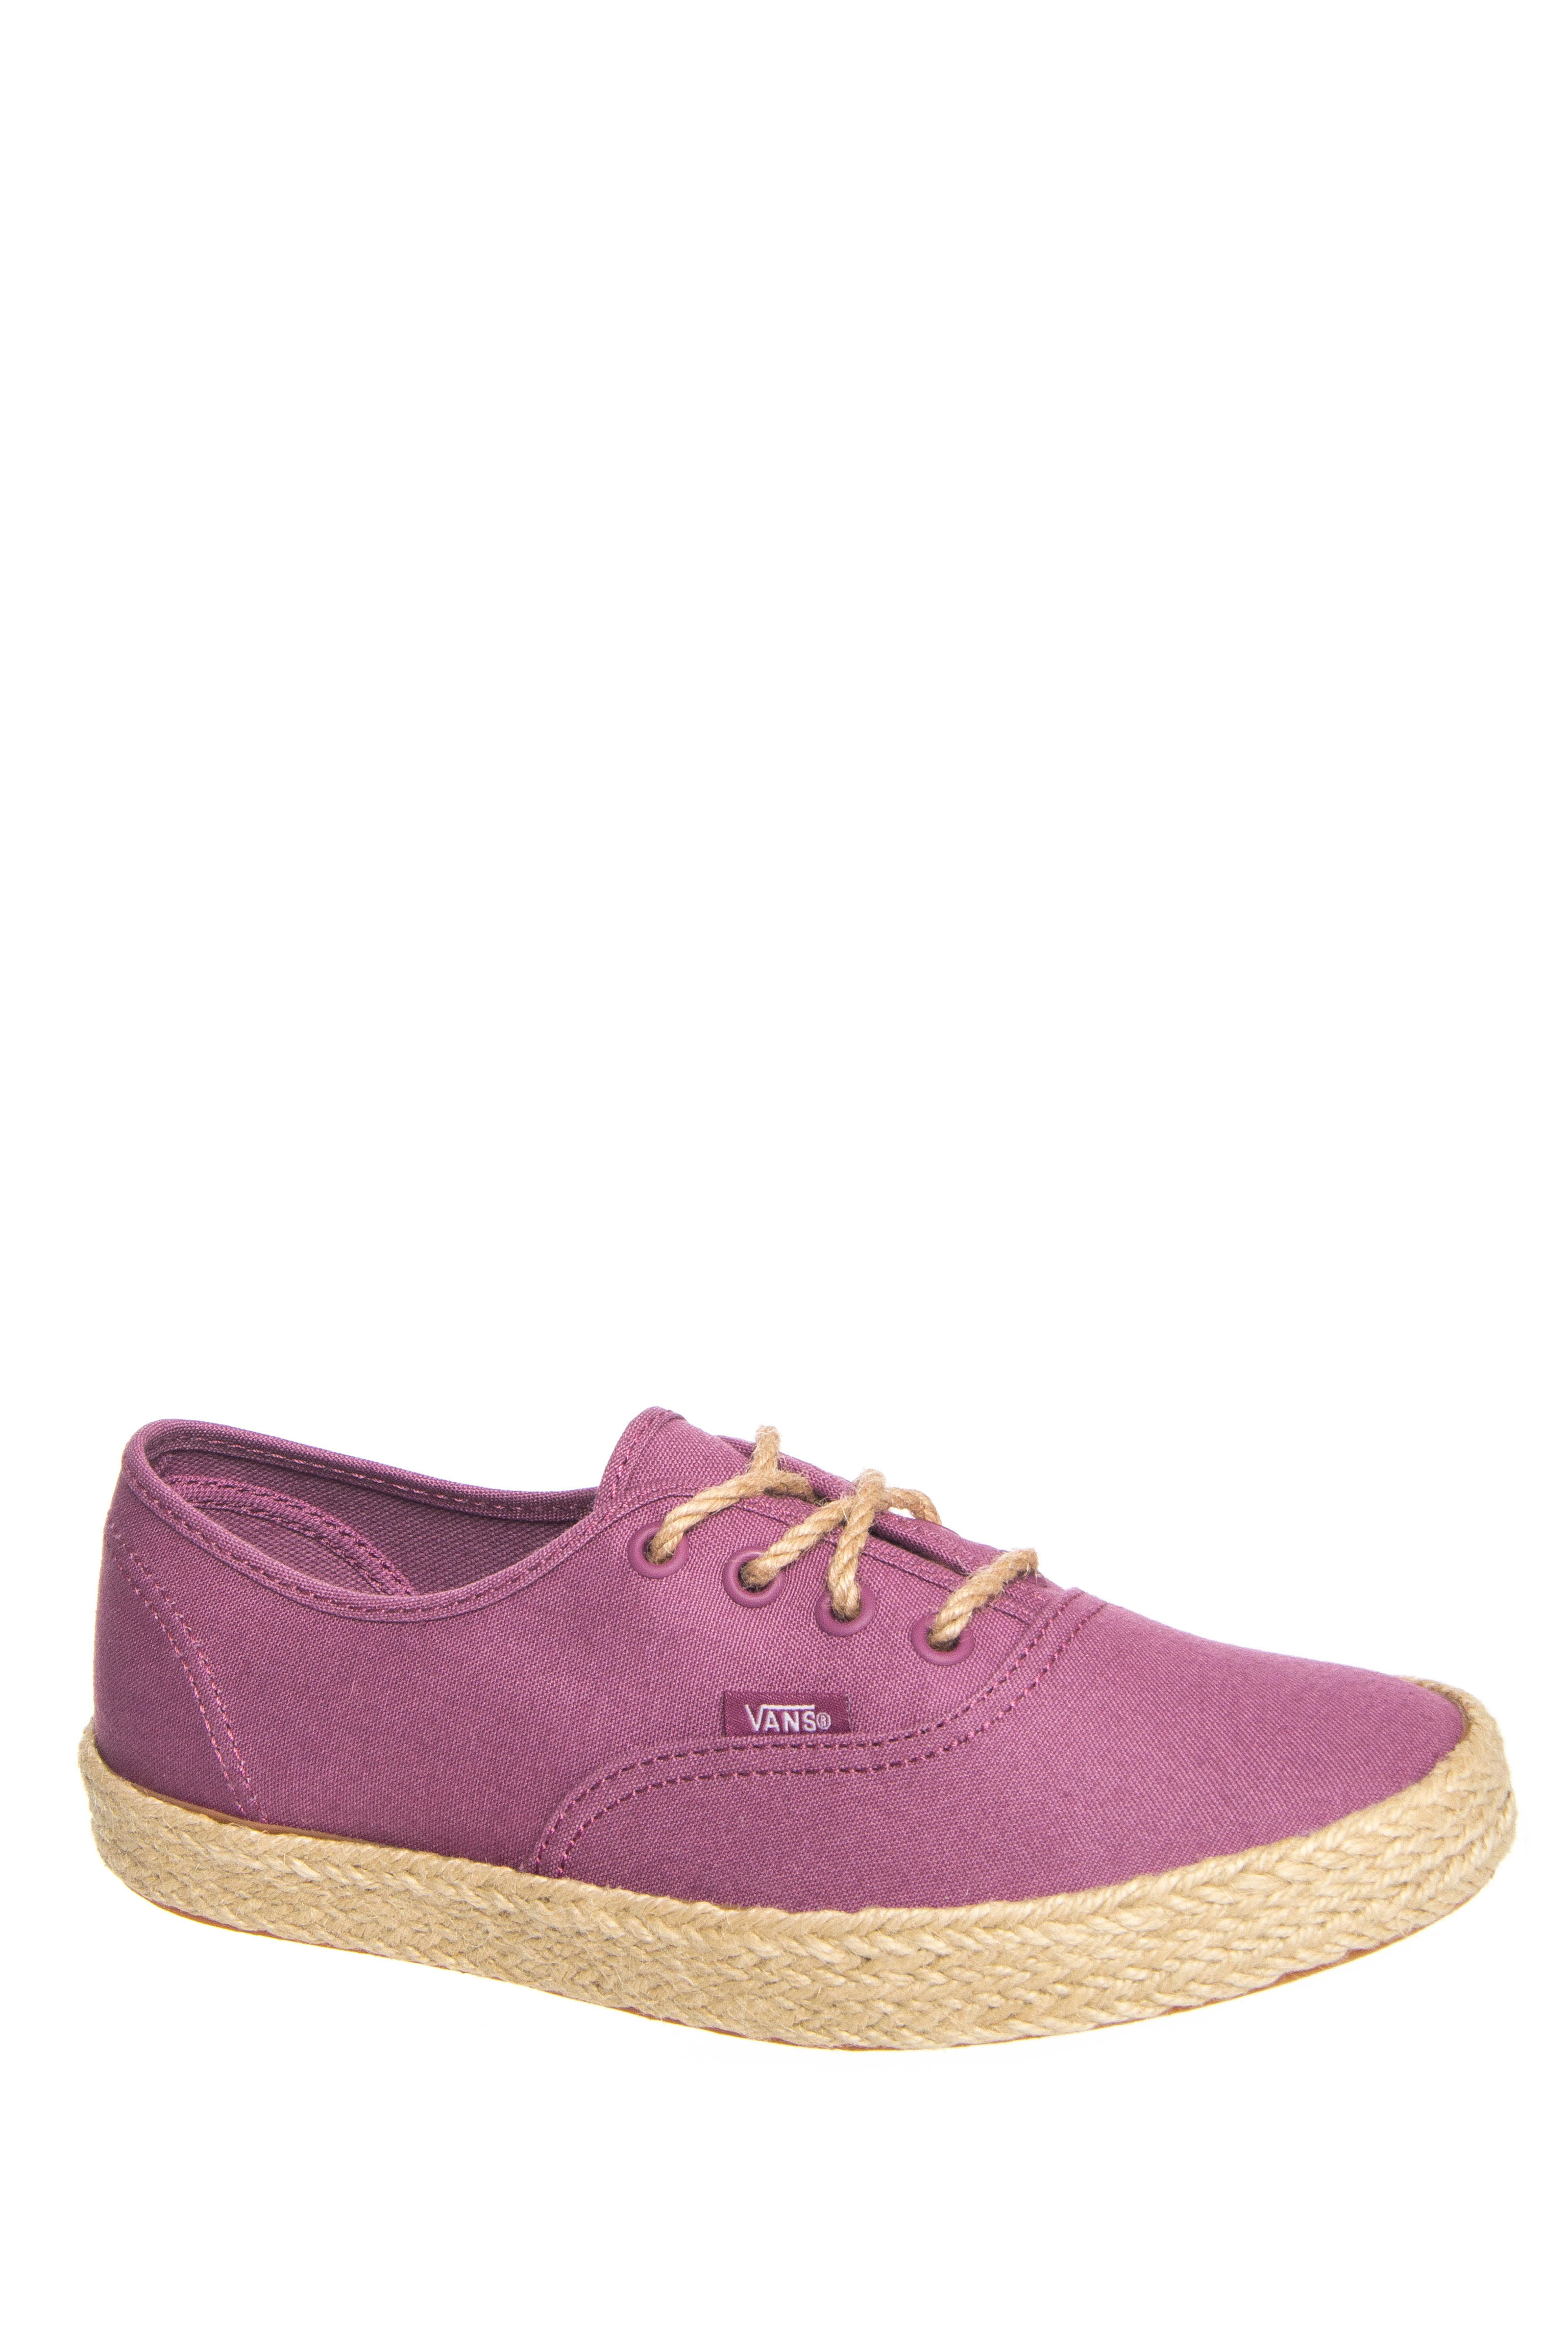 Vans Espadrille Authentic Slip On Sneakers - Grape Nectar